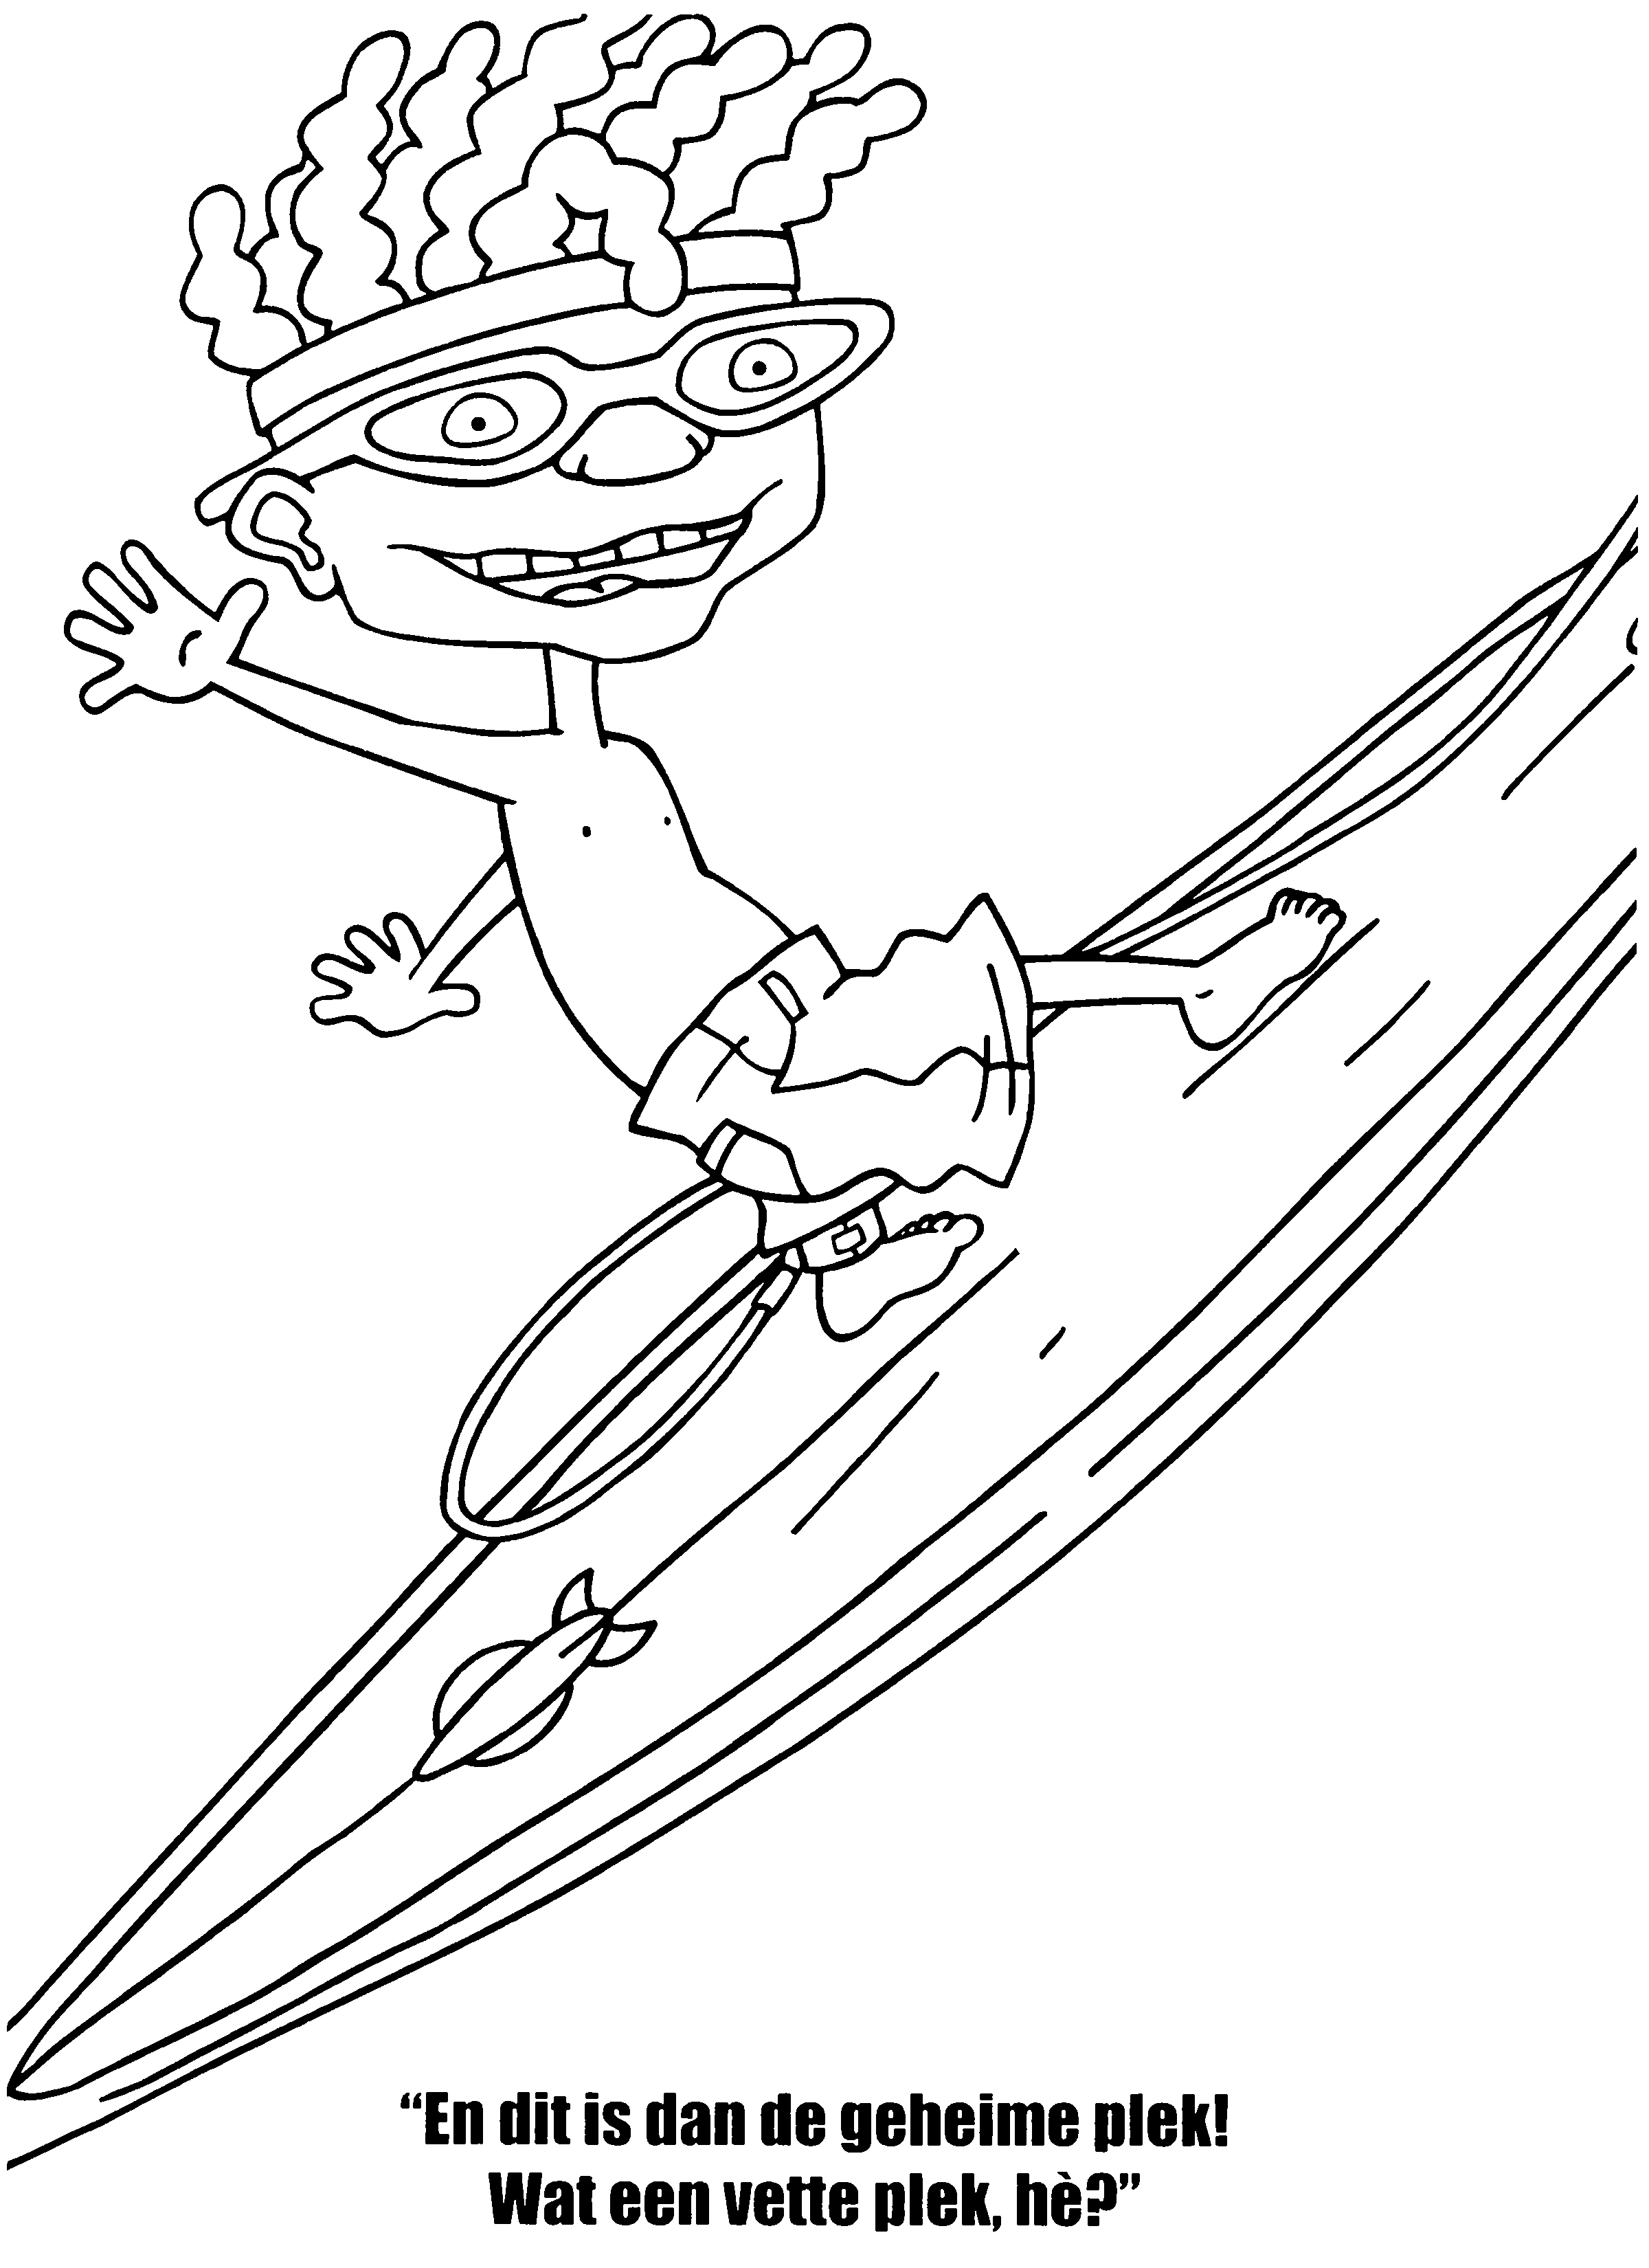 The Best Free Desenhos Coloring Page Images Download From 75 Free